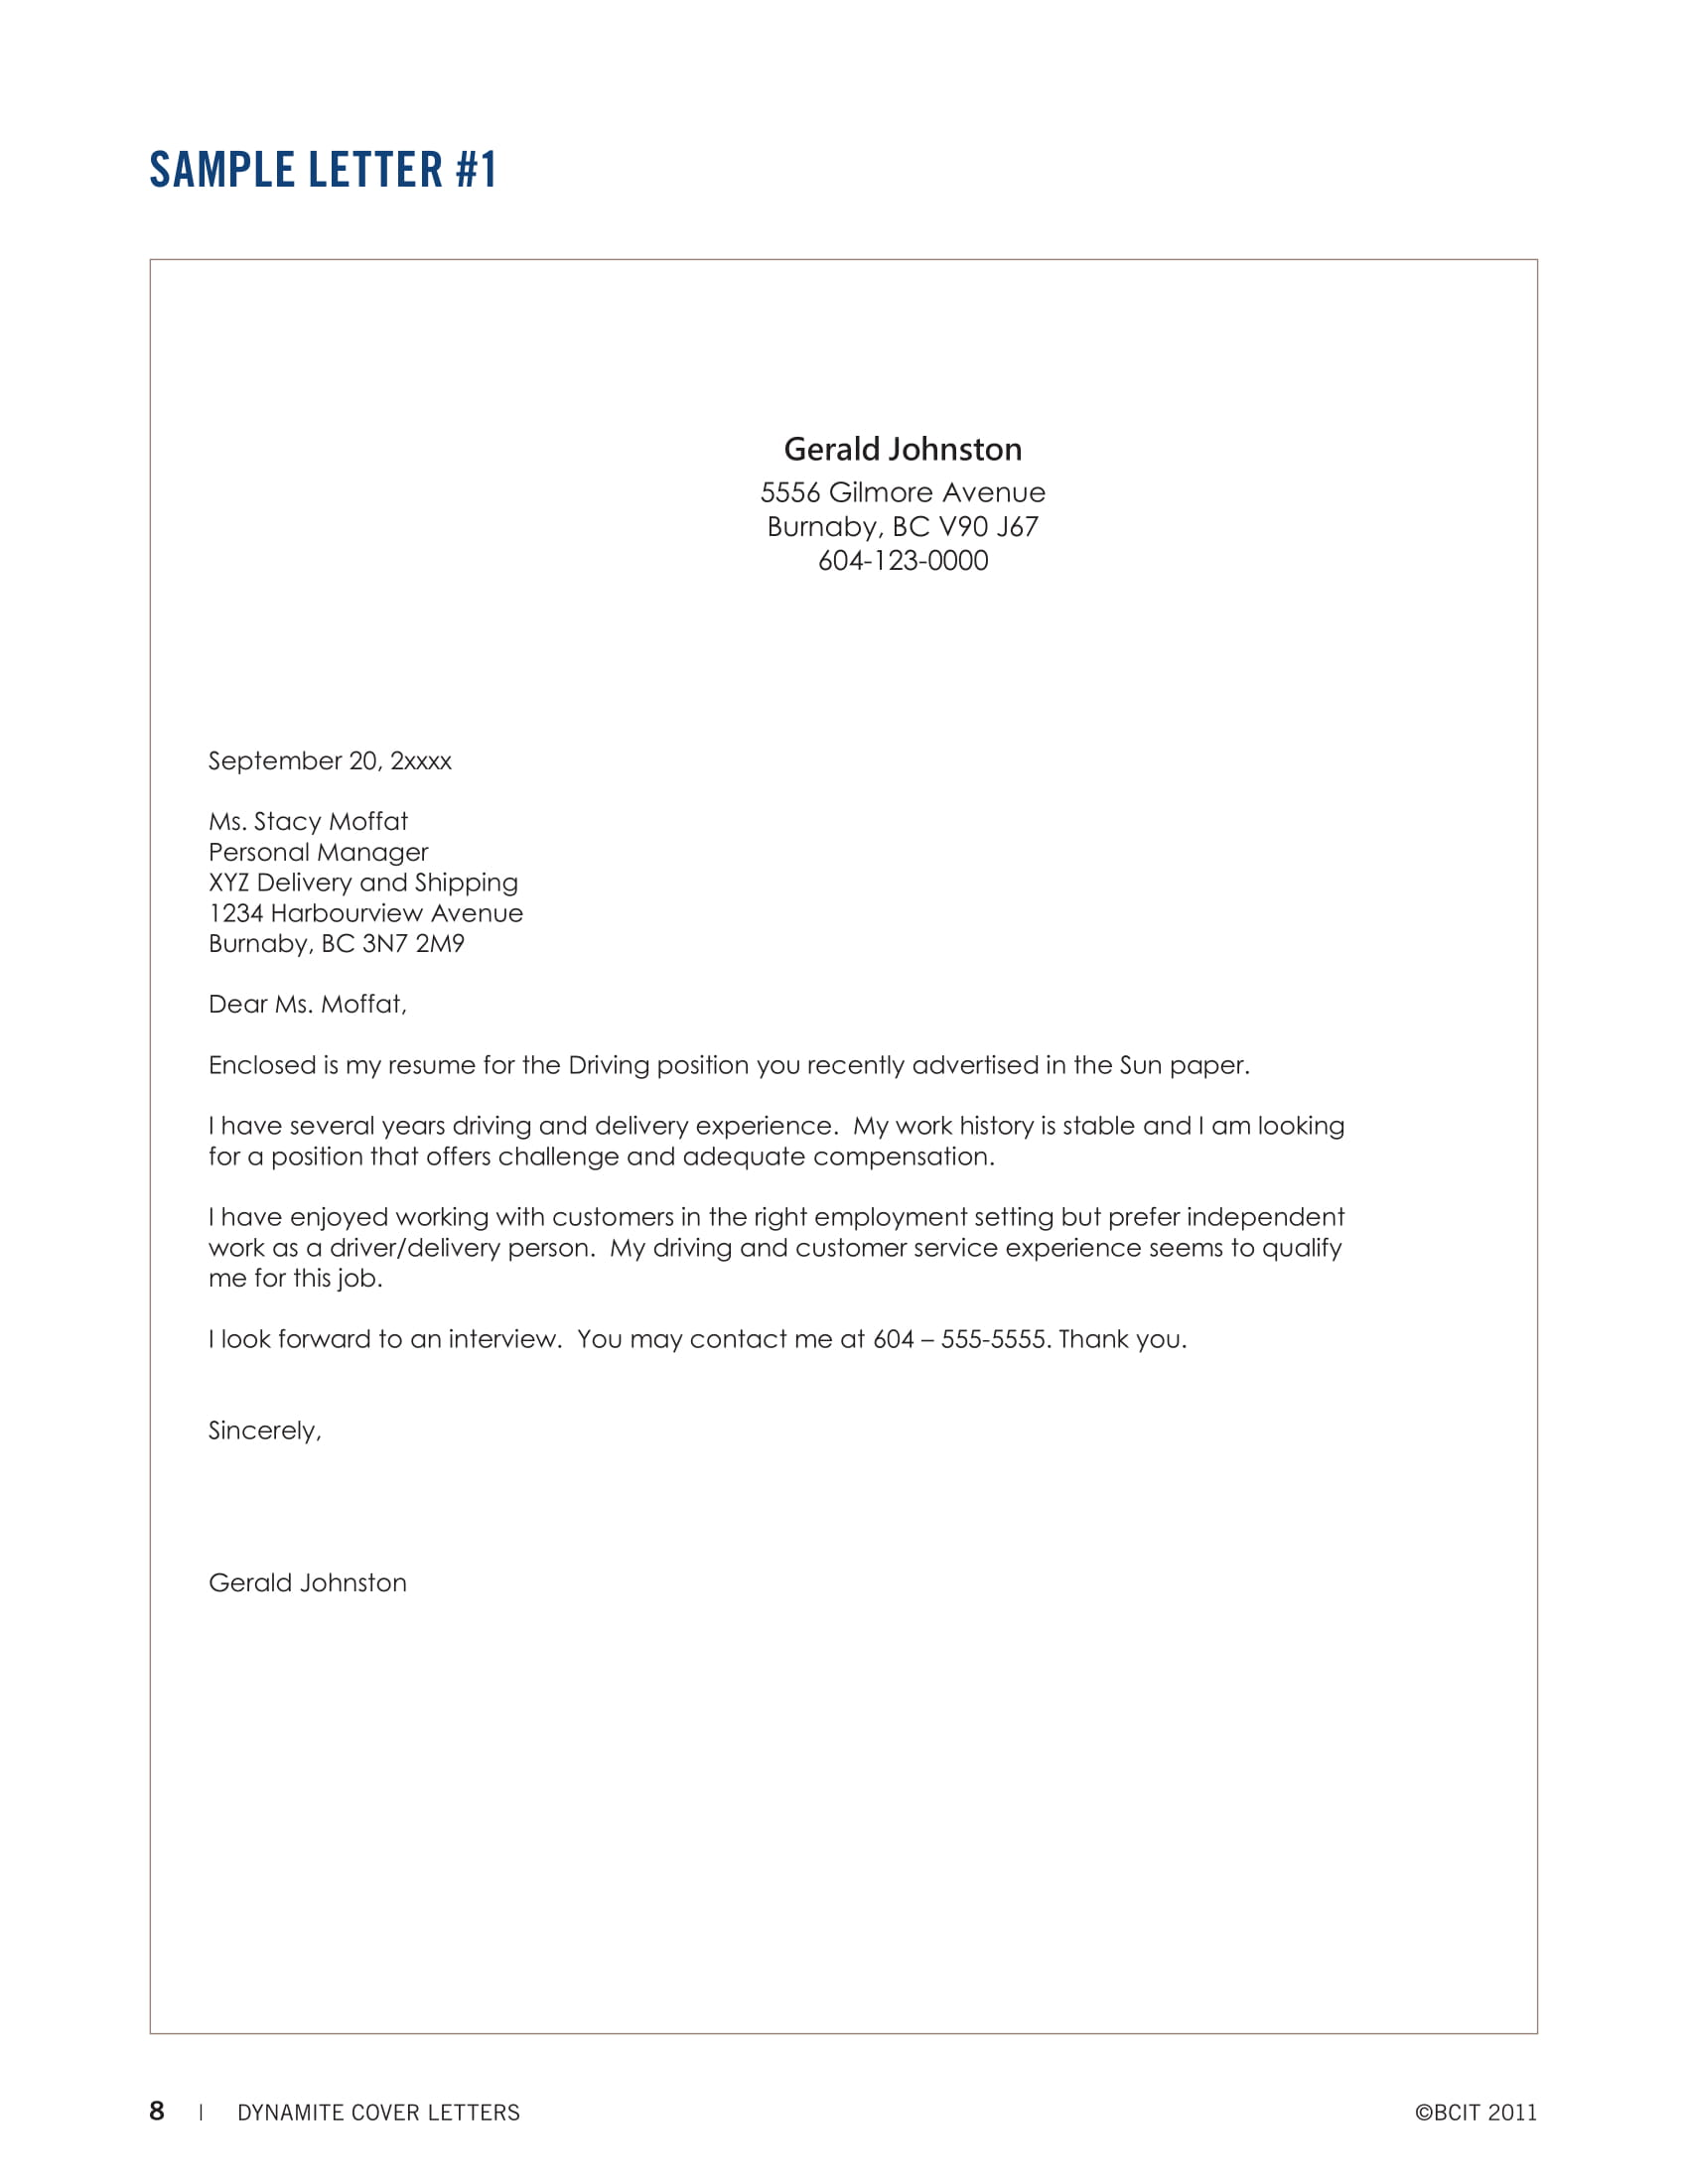 cover letter examples pdf simple resume letters generic objective finance executive Resume Simple Resume Cover Letter Examples